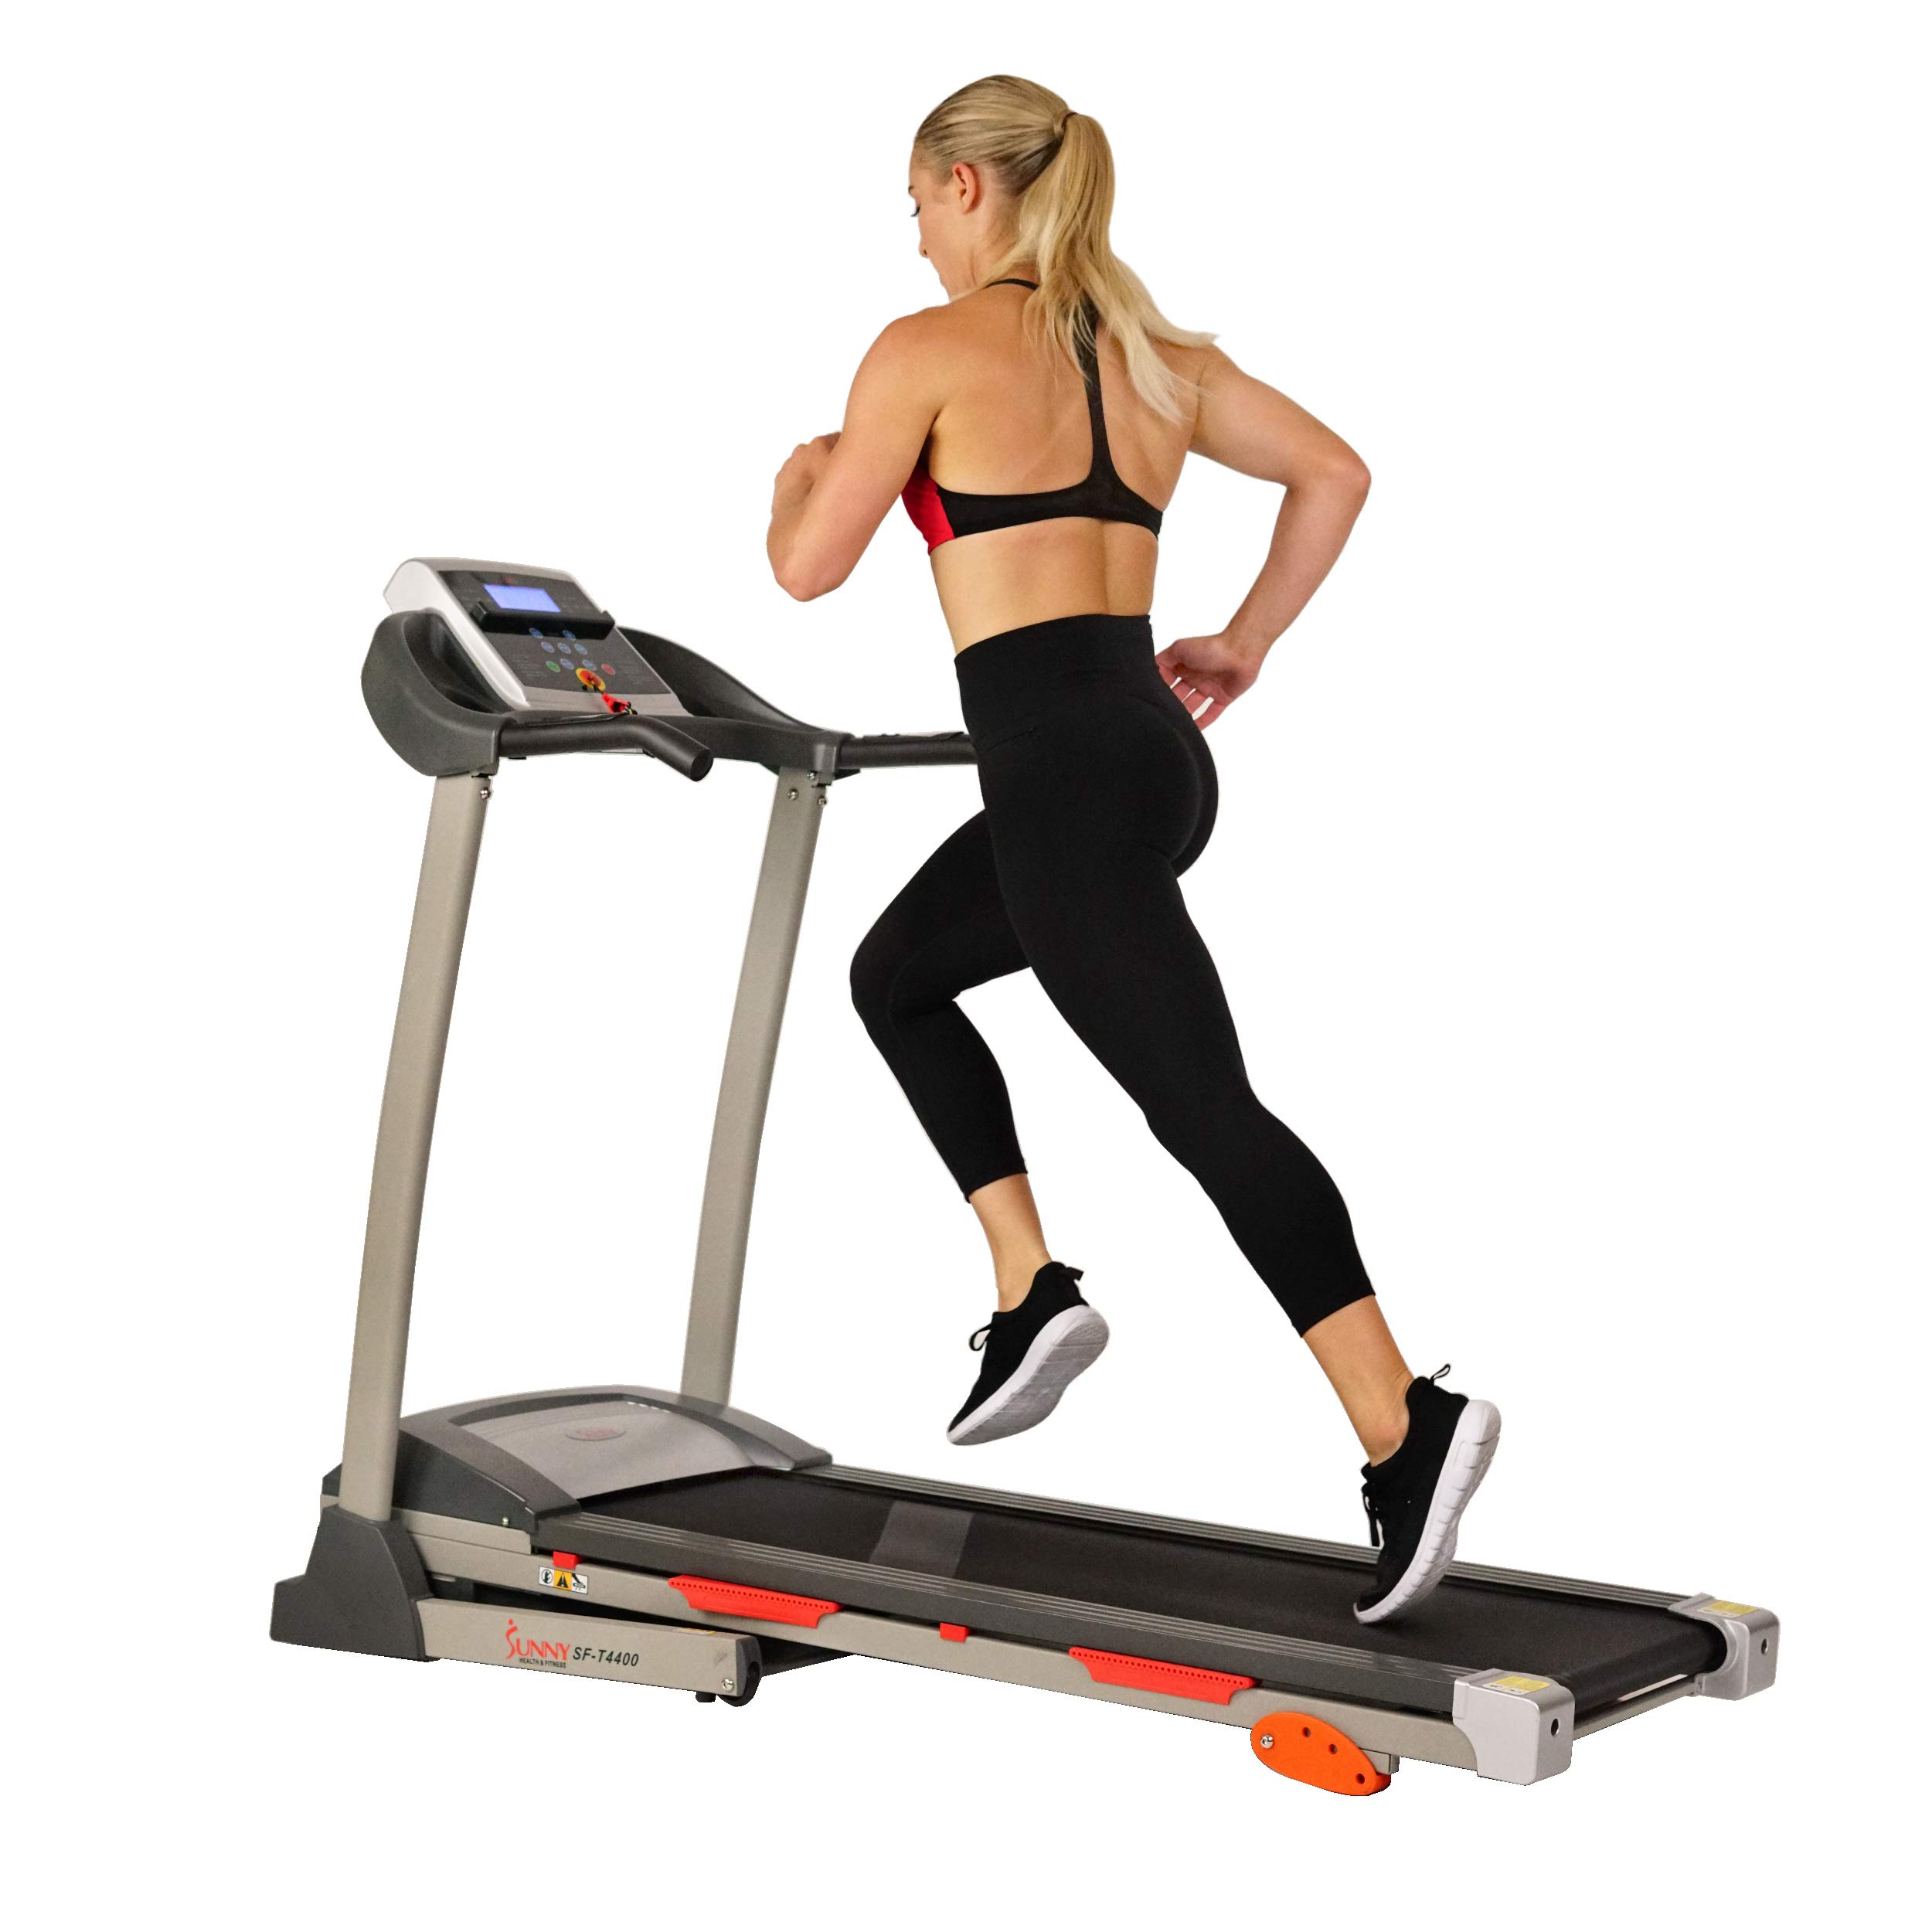 Sunny Health & Fitness Treadmill Motorized Running Machine with LCD Display, Tablet Holder, Shock Absorption, 220 LB Max…